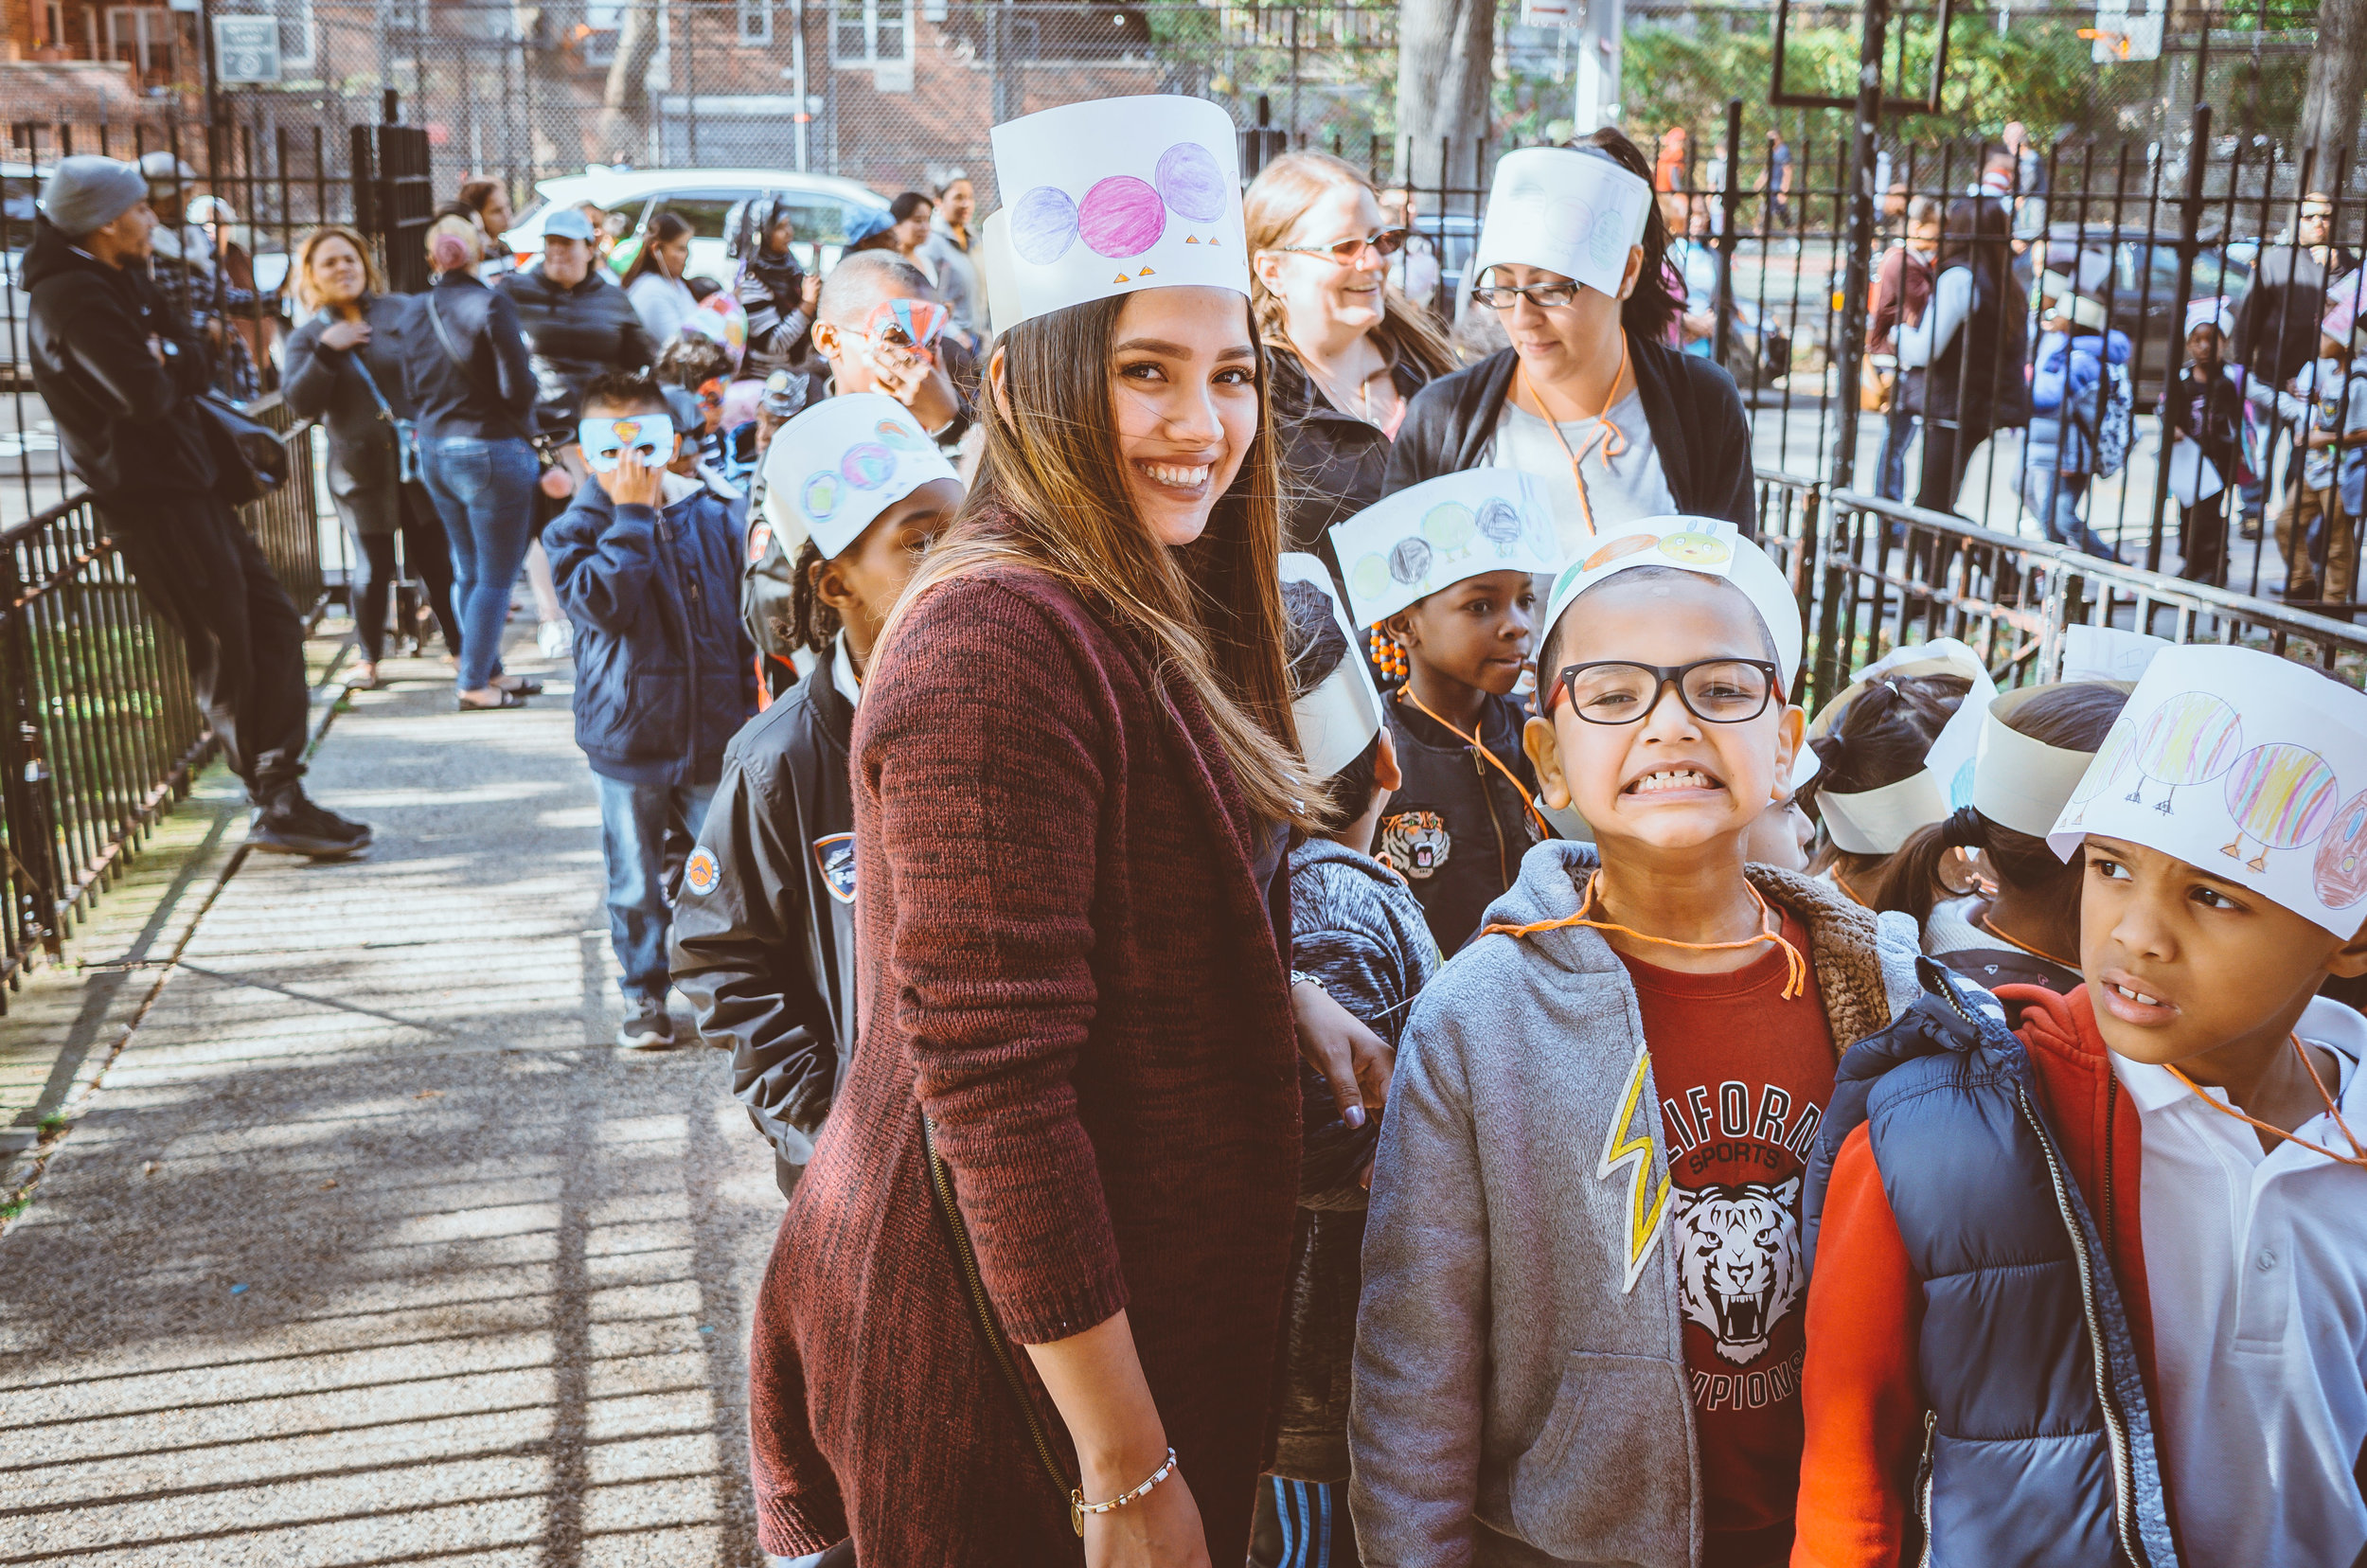 Students and teachers took to the streets as parents marveled at the ingenious hats, masks, and costumes.